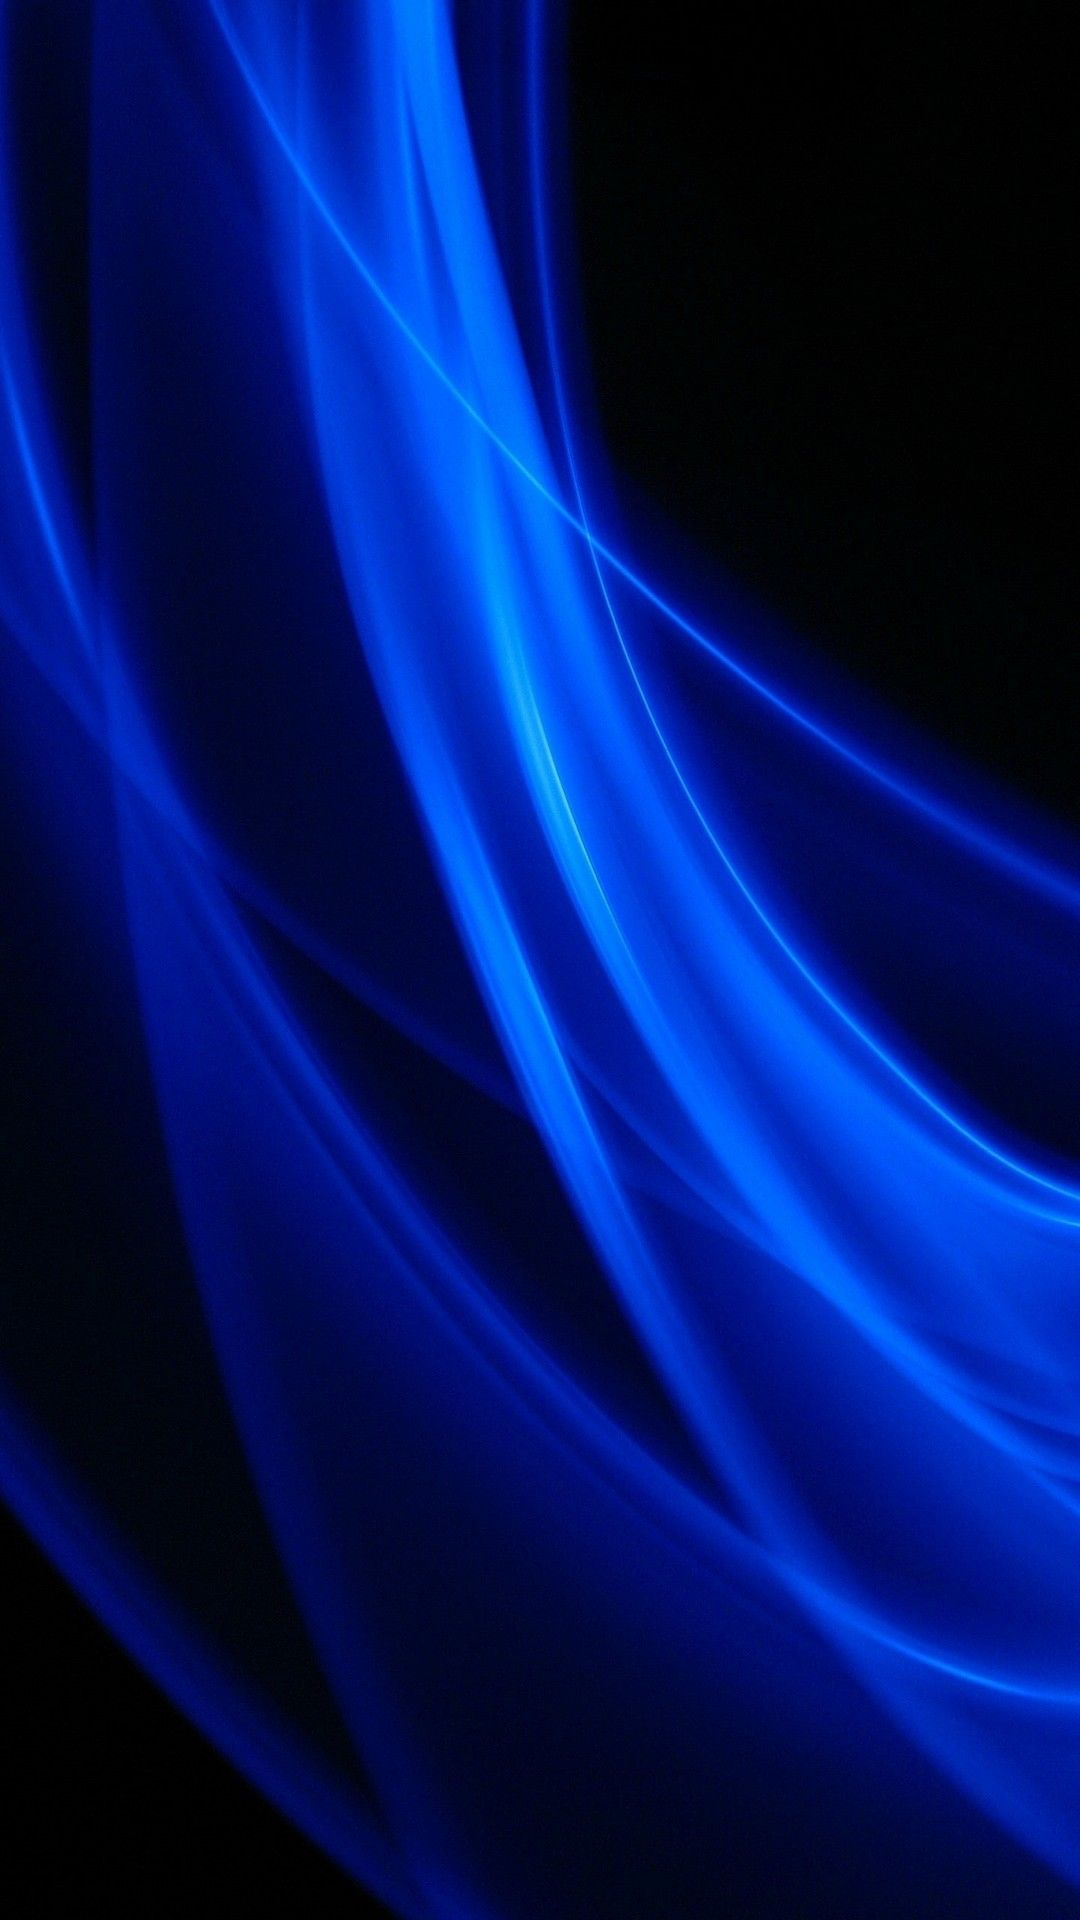 Dark Blue Wallpaper For Iphone Dark Blue Wallpaper Blue